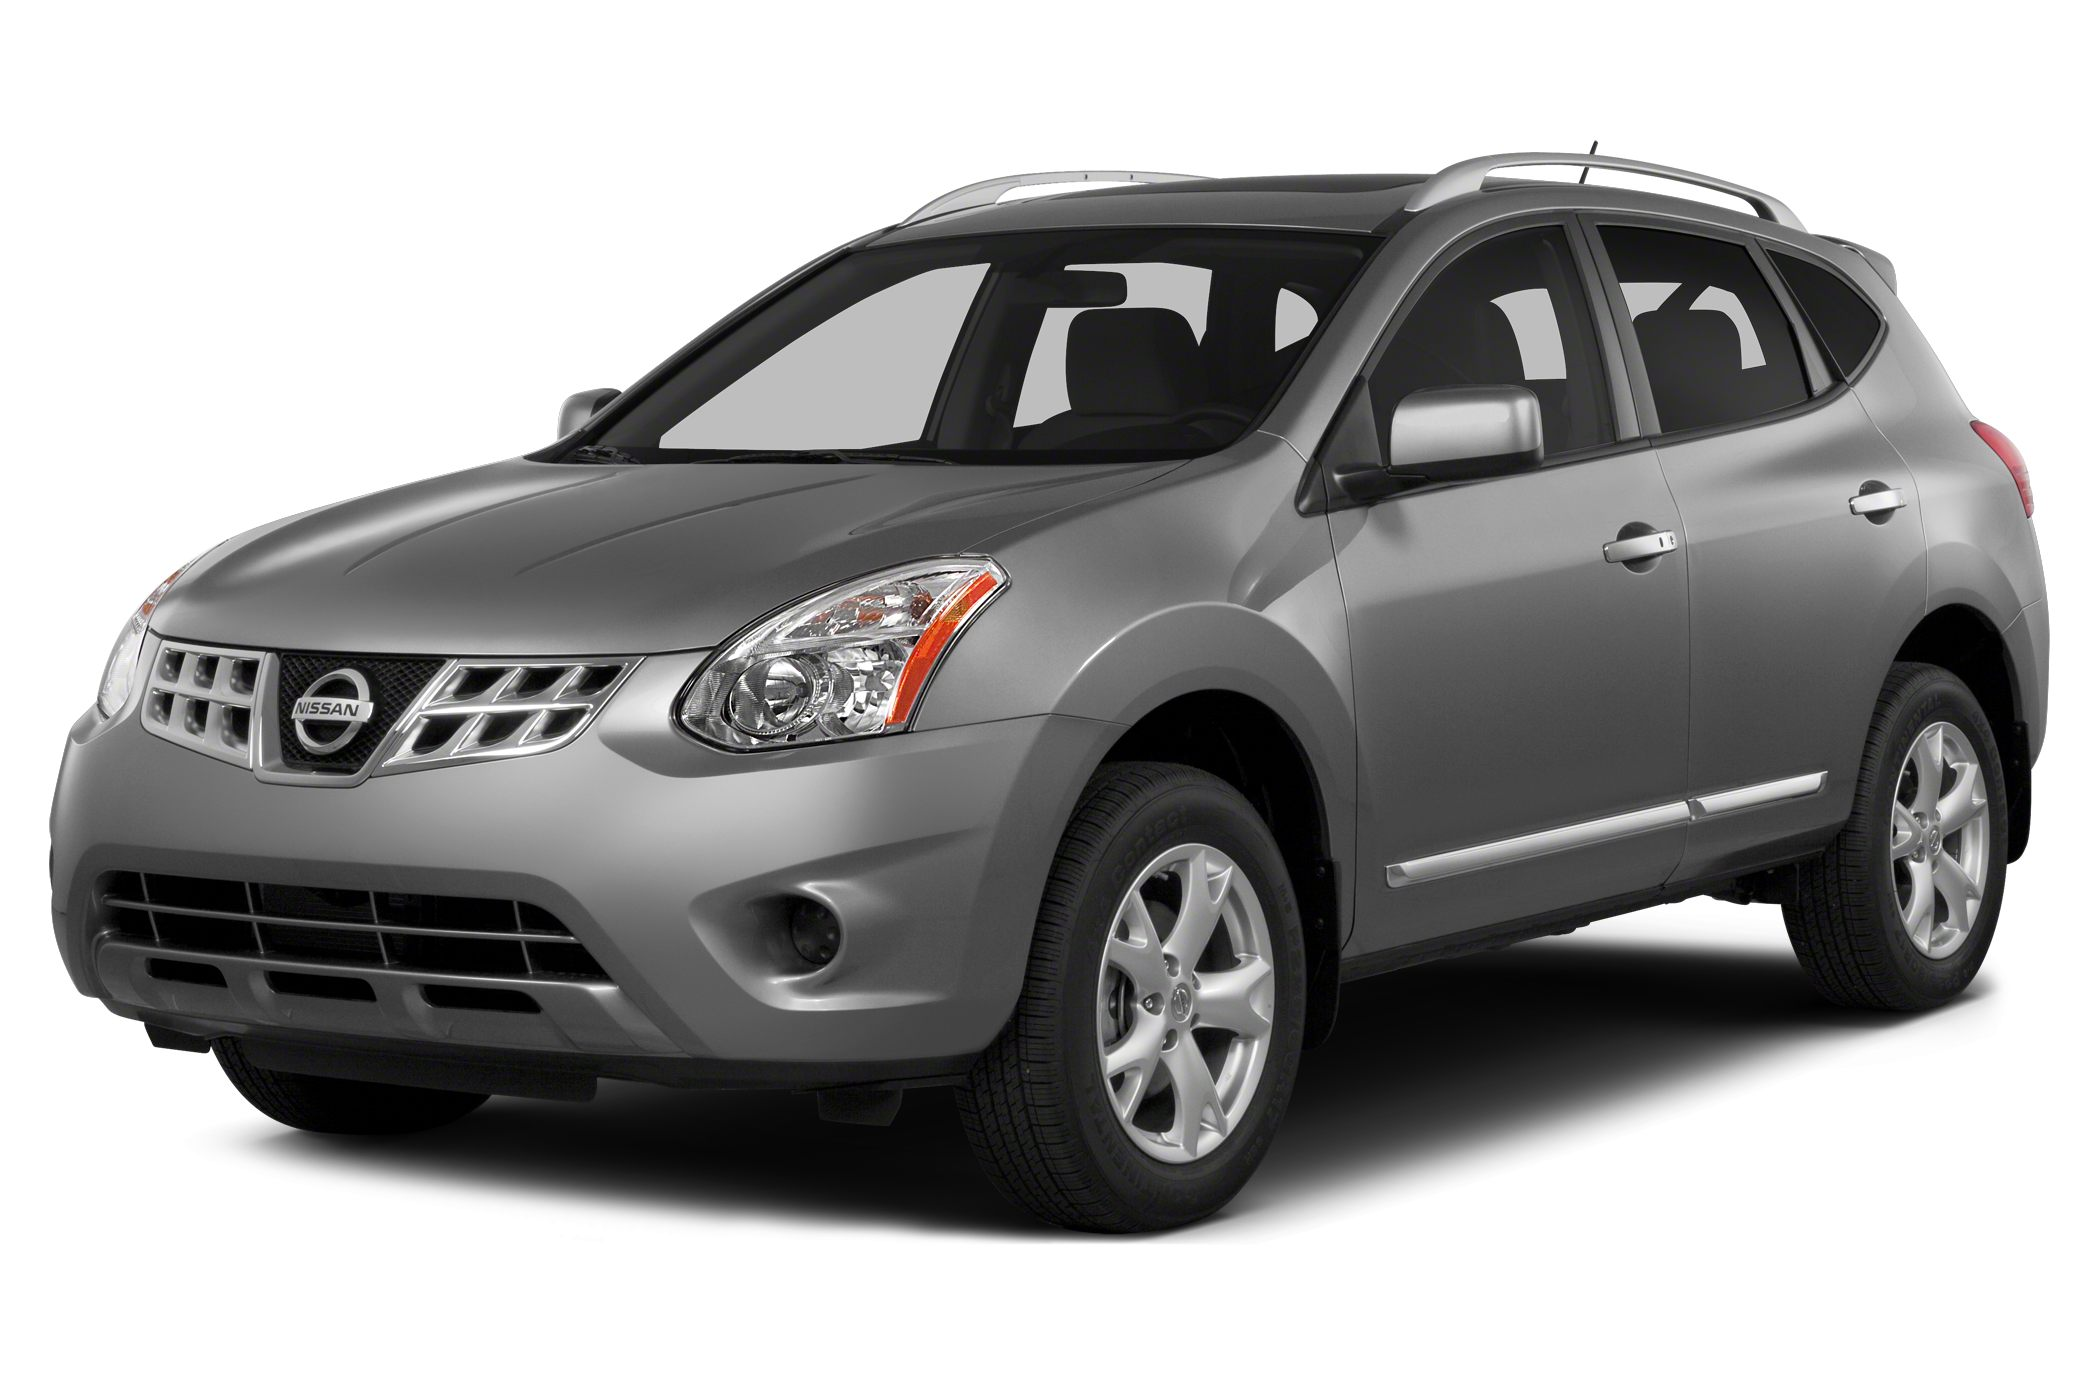 2014 Nissan Rogue Select S SUV for sale in Toms River for $21,695 with 7,933 miles.